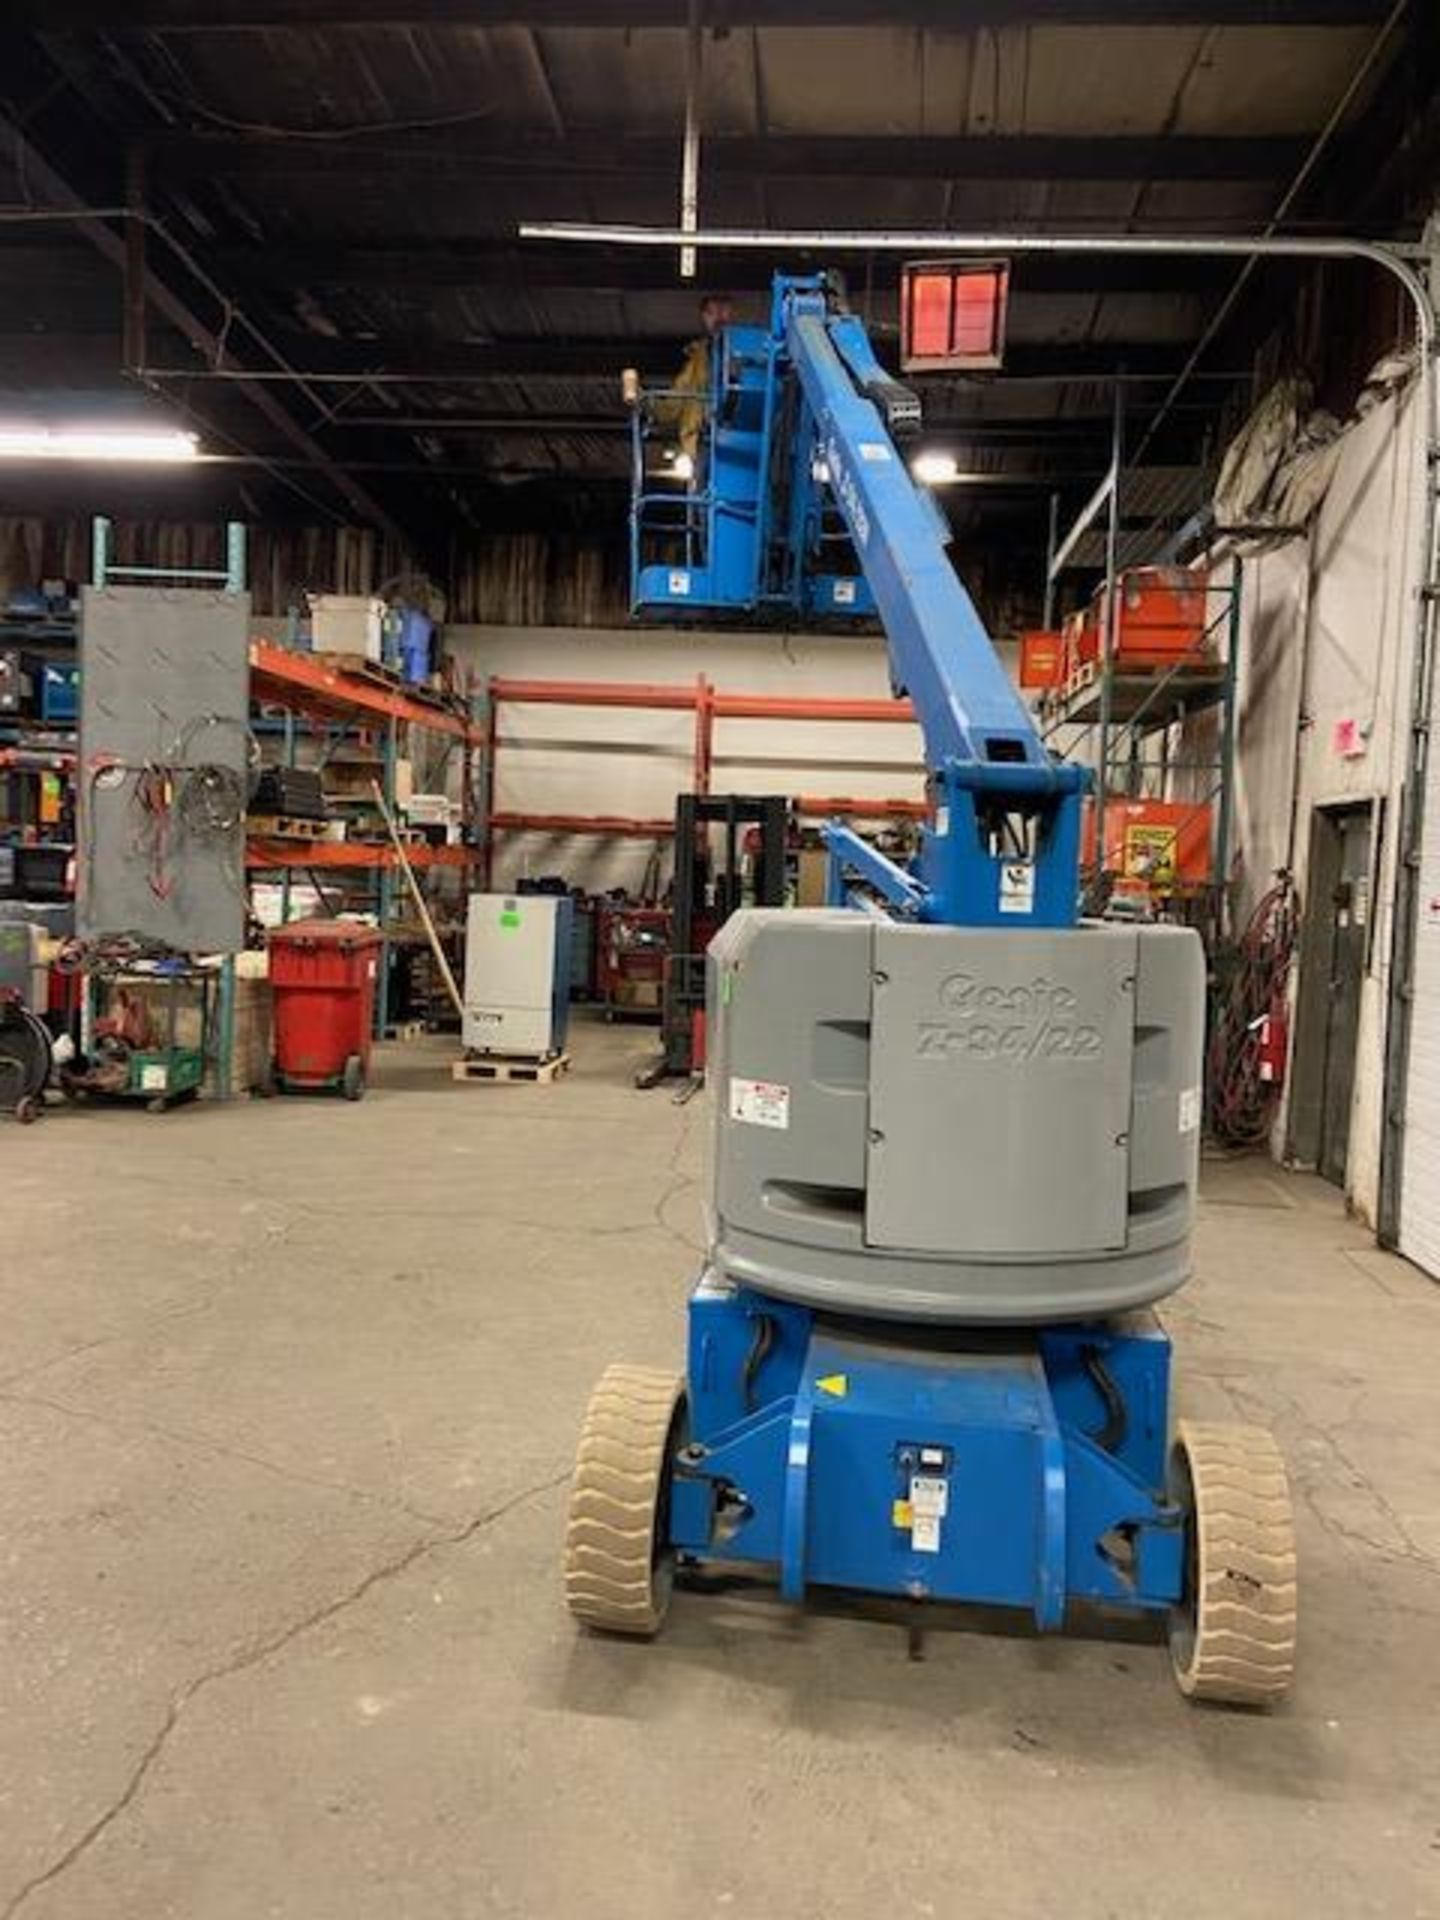 MINT 2005 Genie Boom Lift model Z-34/22N with 34' high with LOW hours ELECTRIC - Image 2 of 4